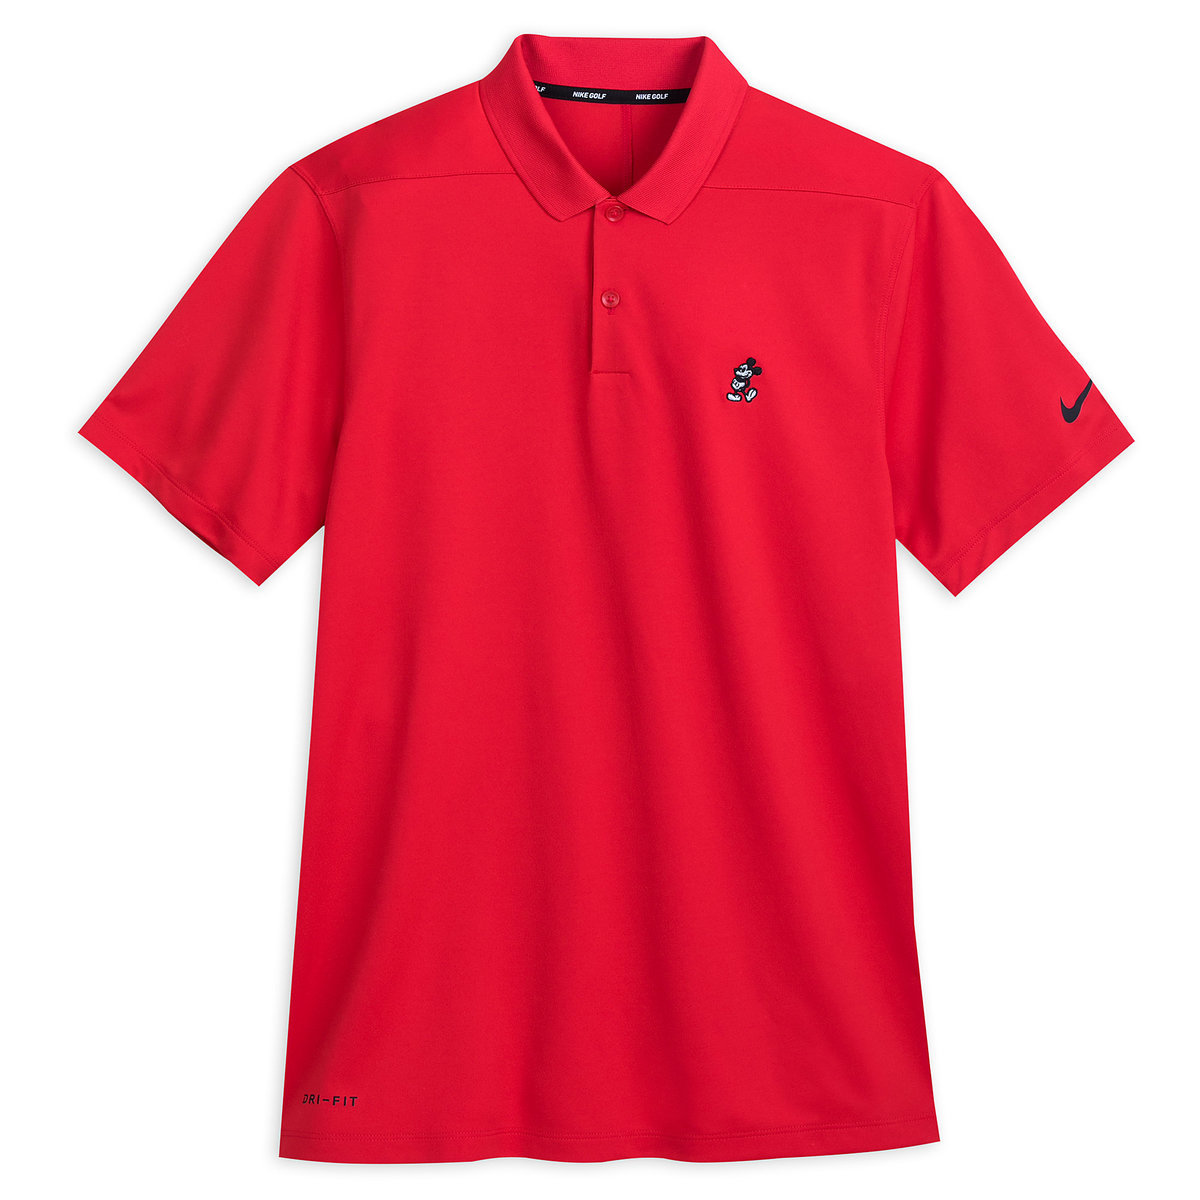 a4e3b33ac Product Image of Mickey Mouse Performance Polo Shirt for Men by Nike Golf -  Red #